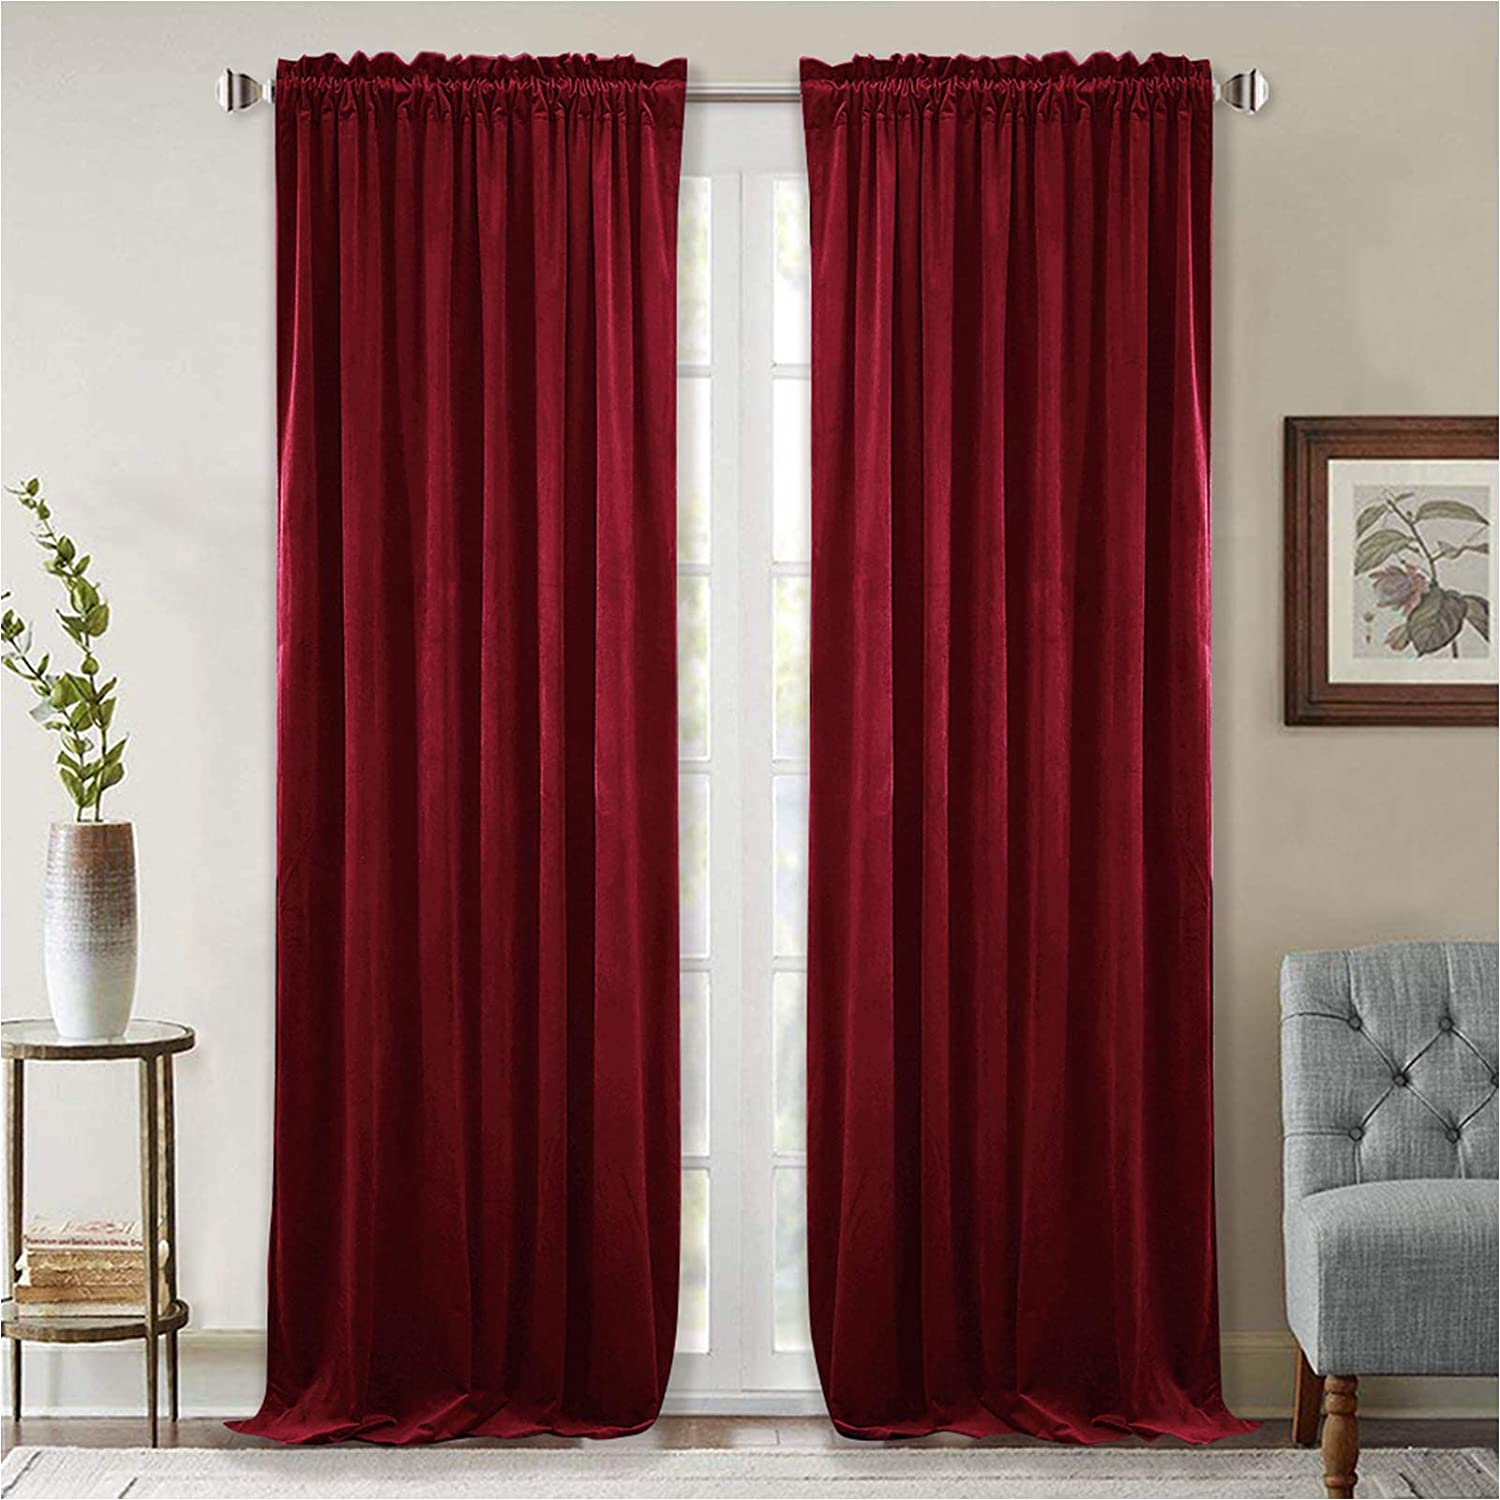 StangH Thick Velvet Curtains 96-inch - Heavy-Duty Large Window Velvet Drapes Room Darkening Privacy Enhancing Panels for Home Theatre/Film Room/Stage, Red, 52 x 96 inches, 2 Pcs